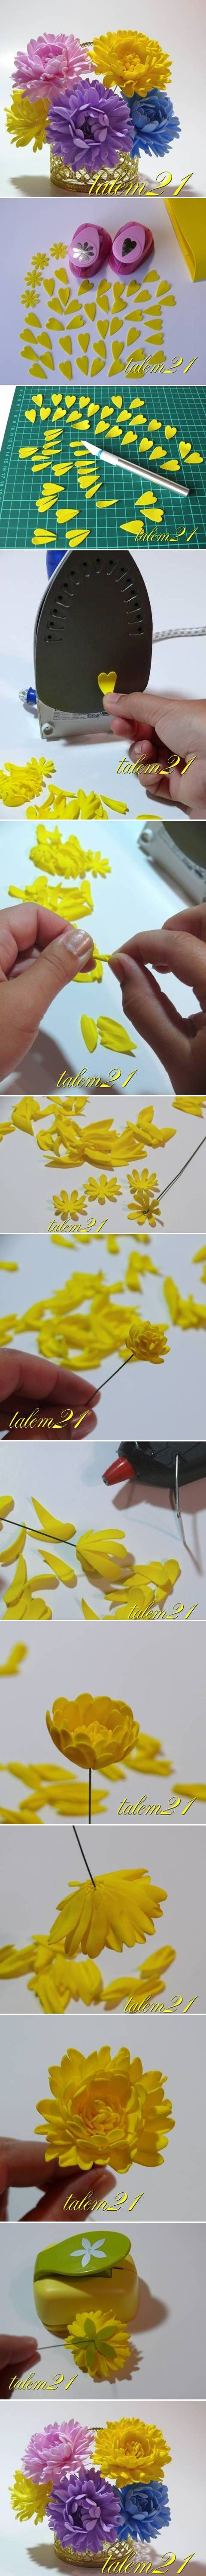 DIY Small Chrysanthemum Flower DIY Projects | UsefulDIY.com Follow Us on Facebook ==> http://www.facebook.com/UsefulDiy